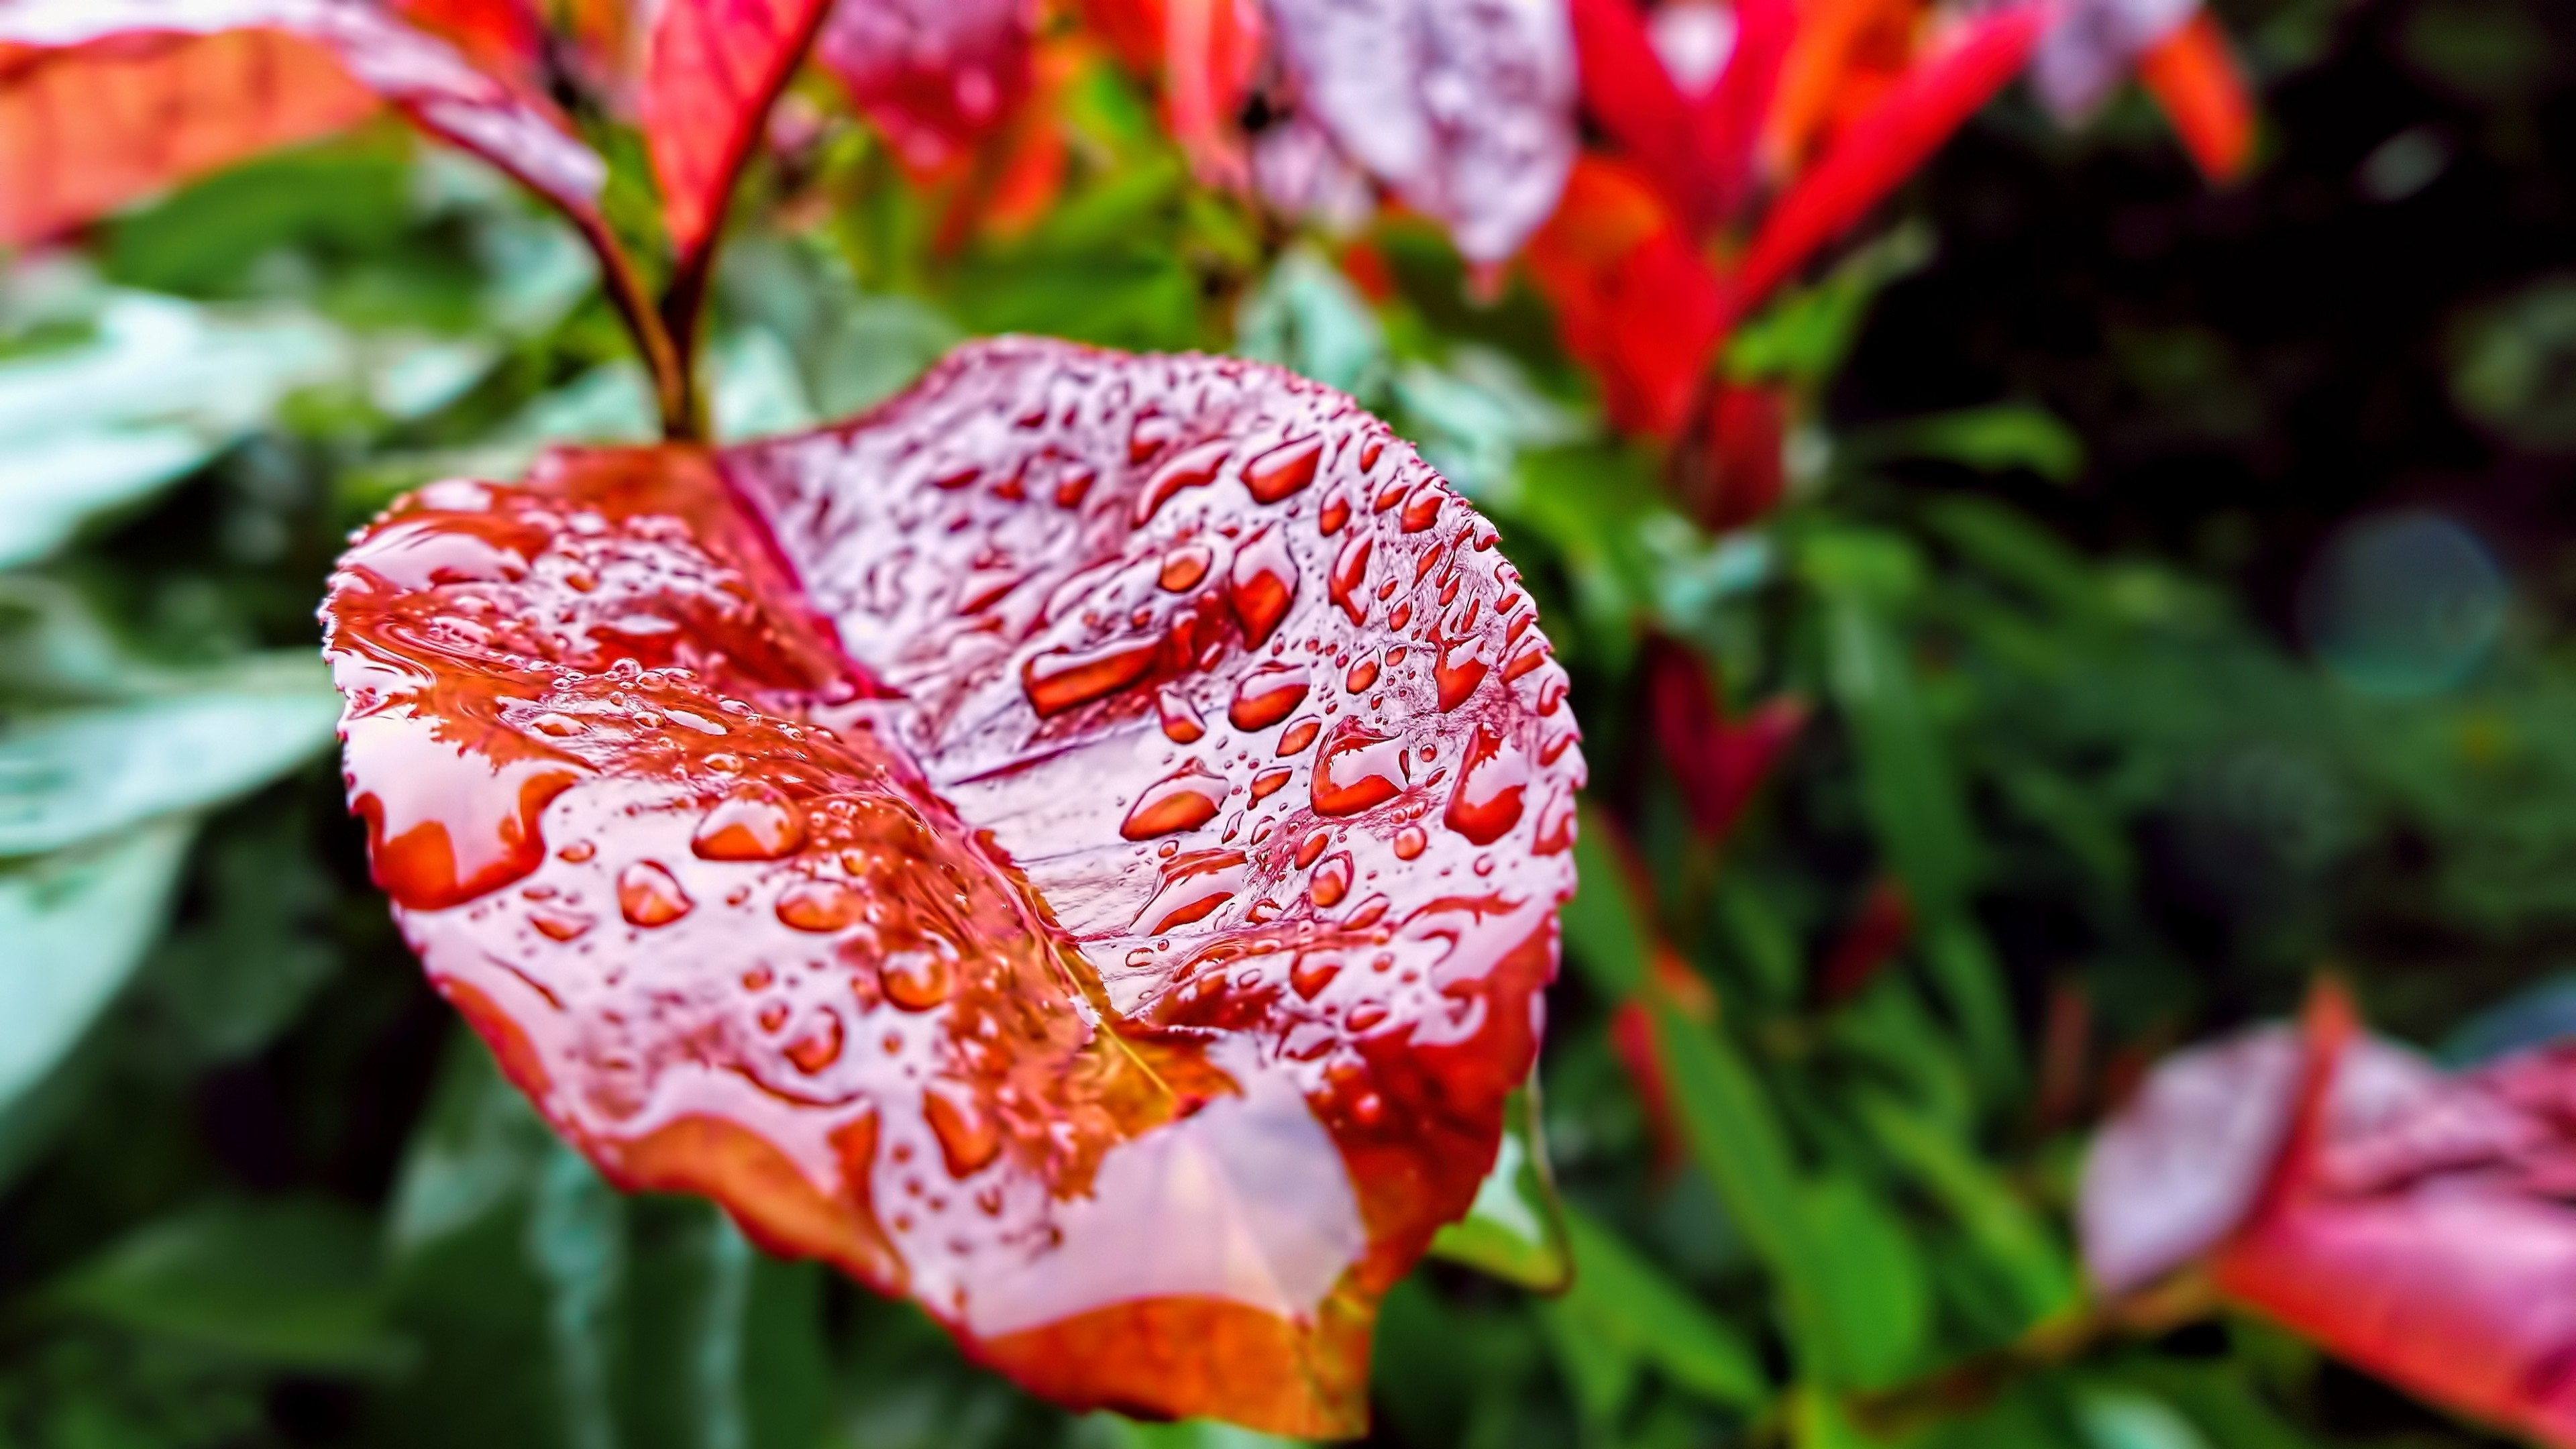 Wallpaper Leaves 5k 4k Wallpaper Drops Rain Autumn